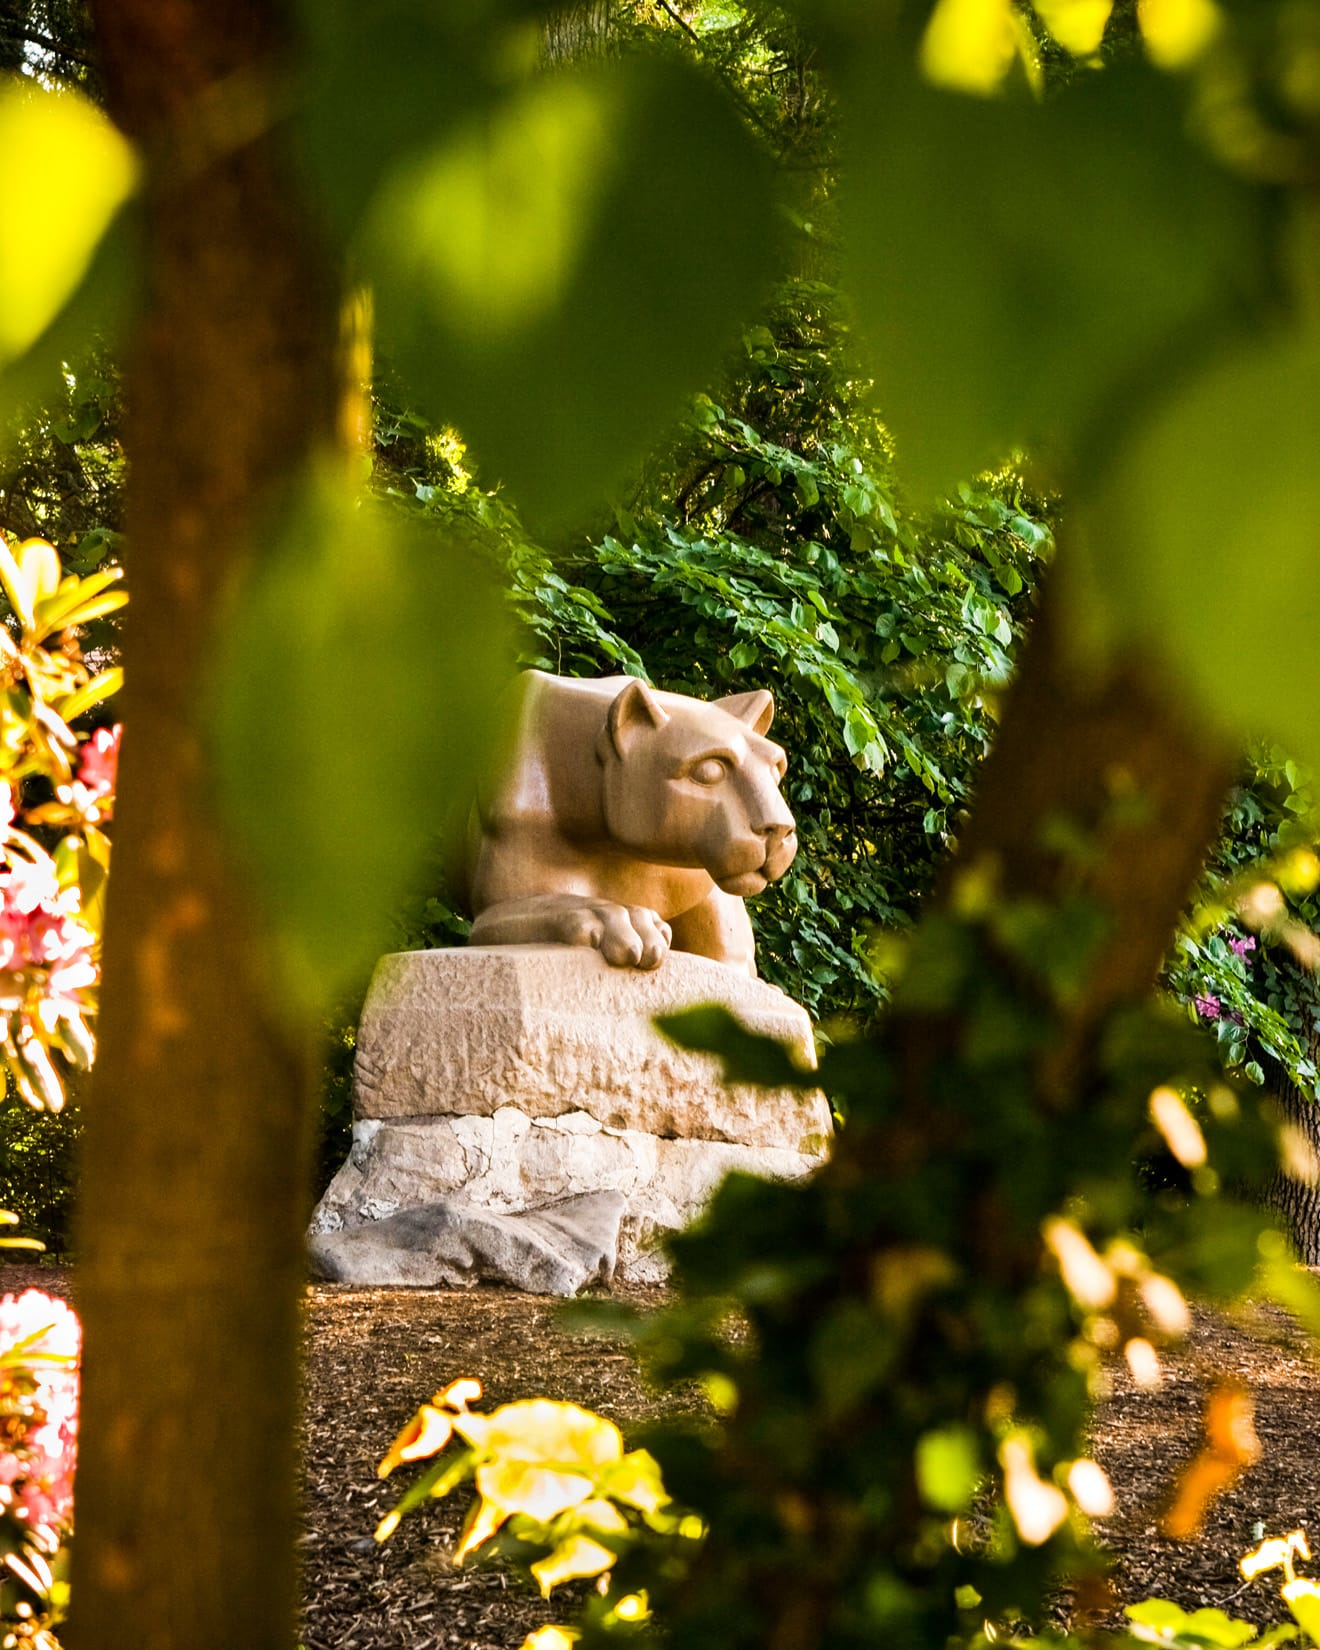 Lion in Hiding by Bob Lambert Photography (Nittany Lion Shrine, State College, PA)